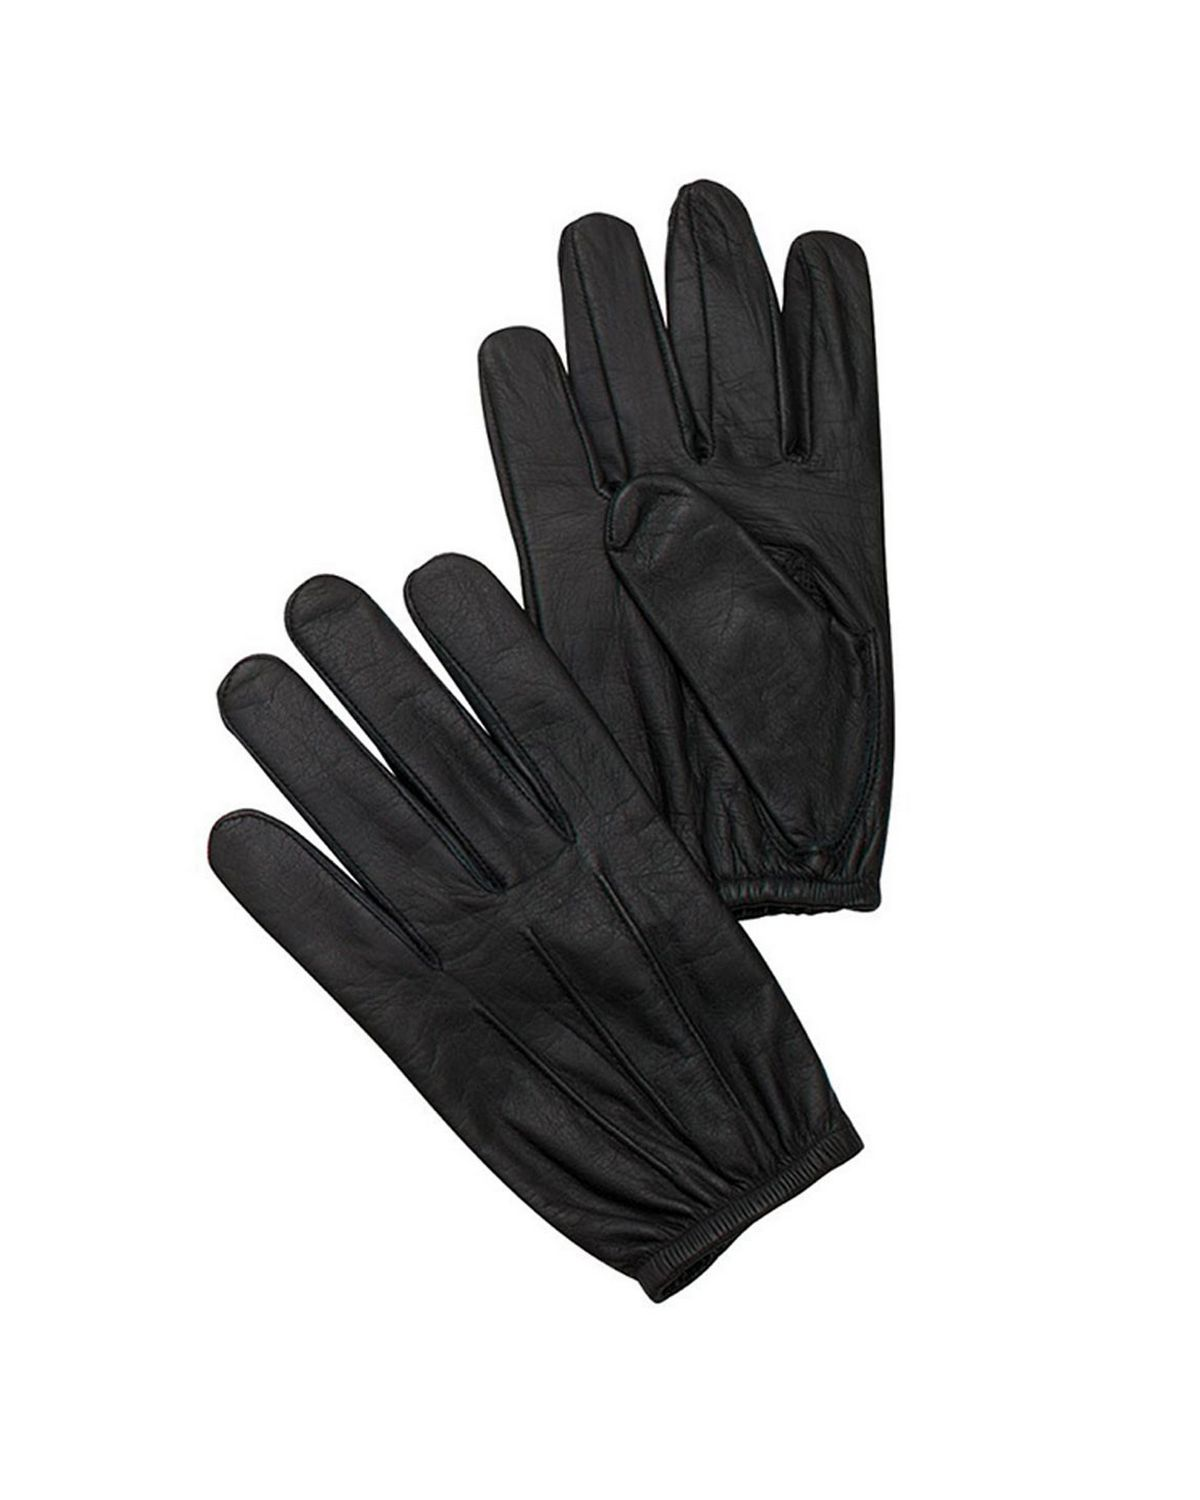 Rothco 3450 Search Gloves - Black - M 3450